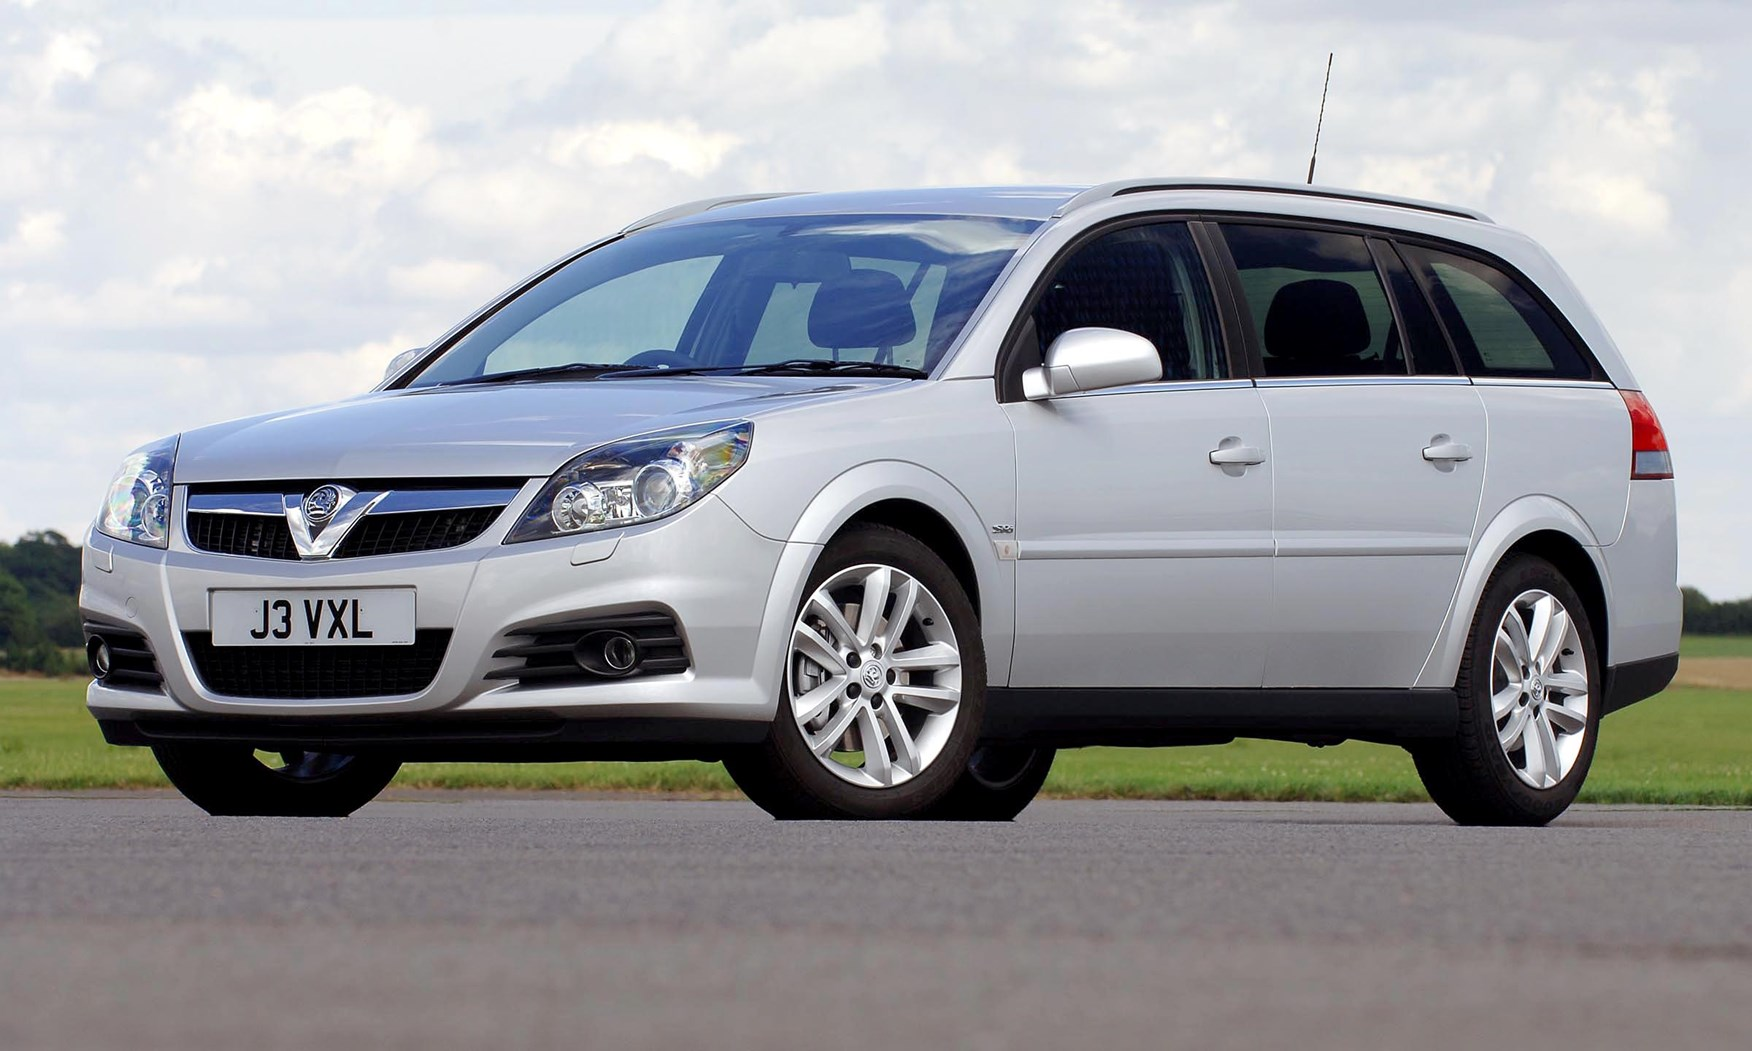 Vauxhall vauxhall vxr8 estate : Vauxhall Vectra Estate (2005 - 2008) Photos | Parkers